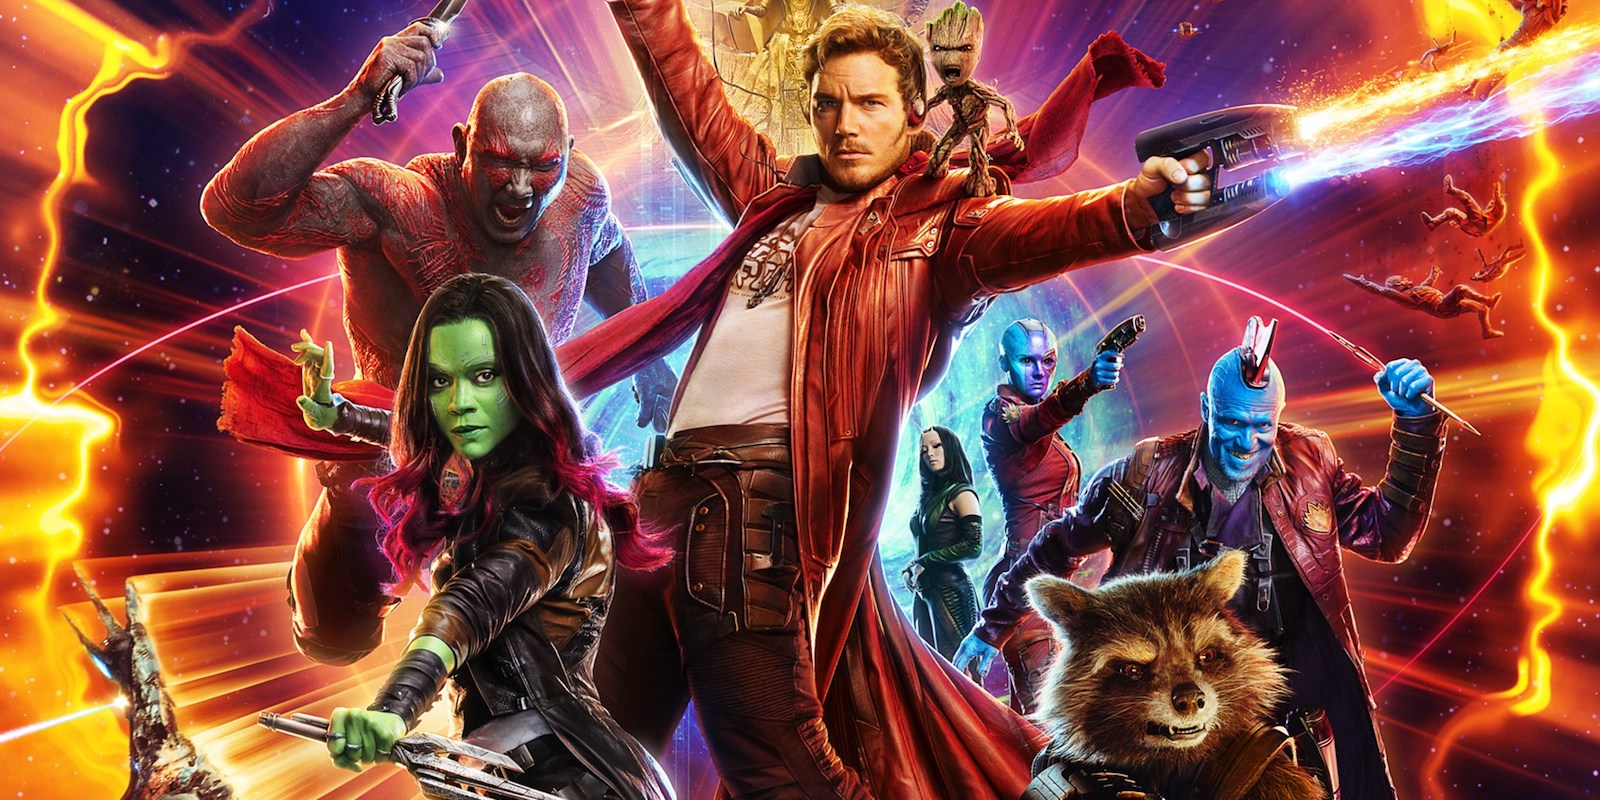 Guardians of the Galaxy: Vol 2: It's Nice To See You All Again – My *Spoiler Free Thoughts